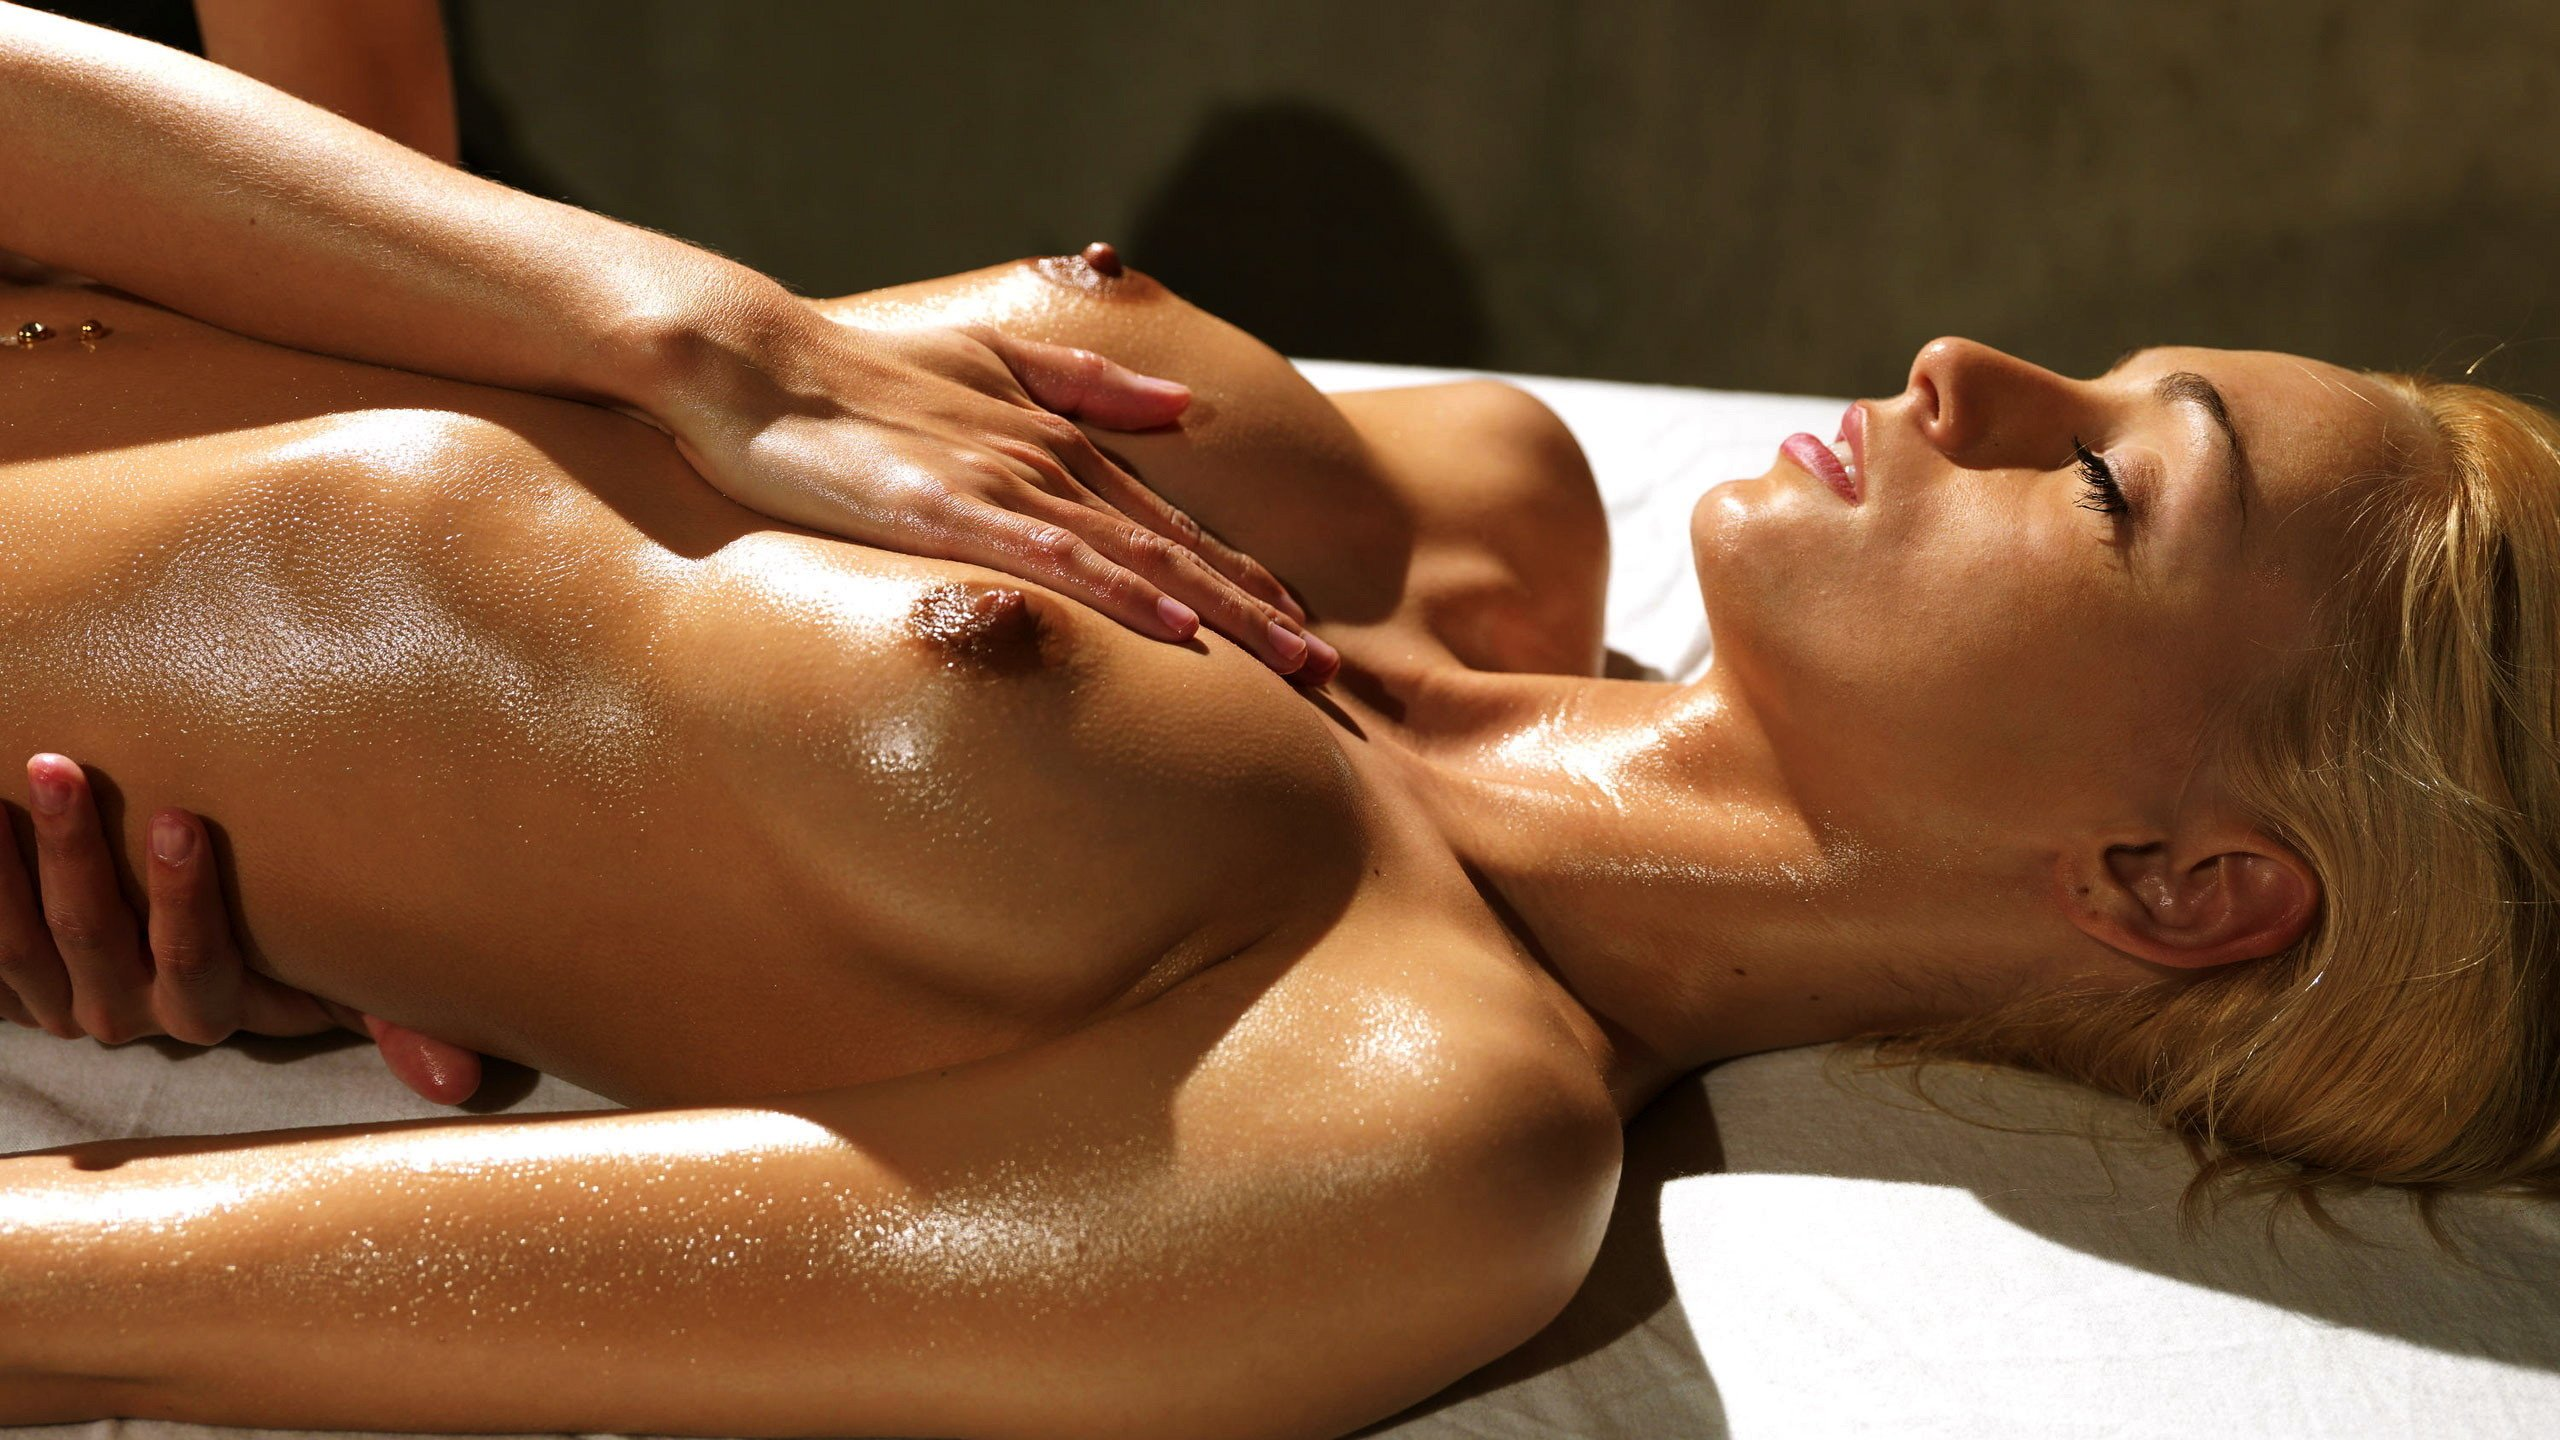 New jersey massage parlor listings